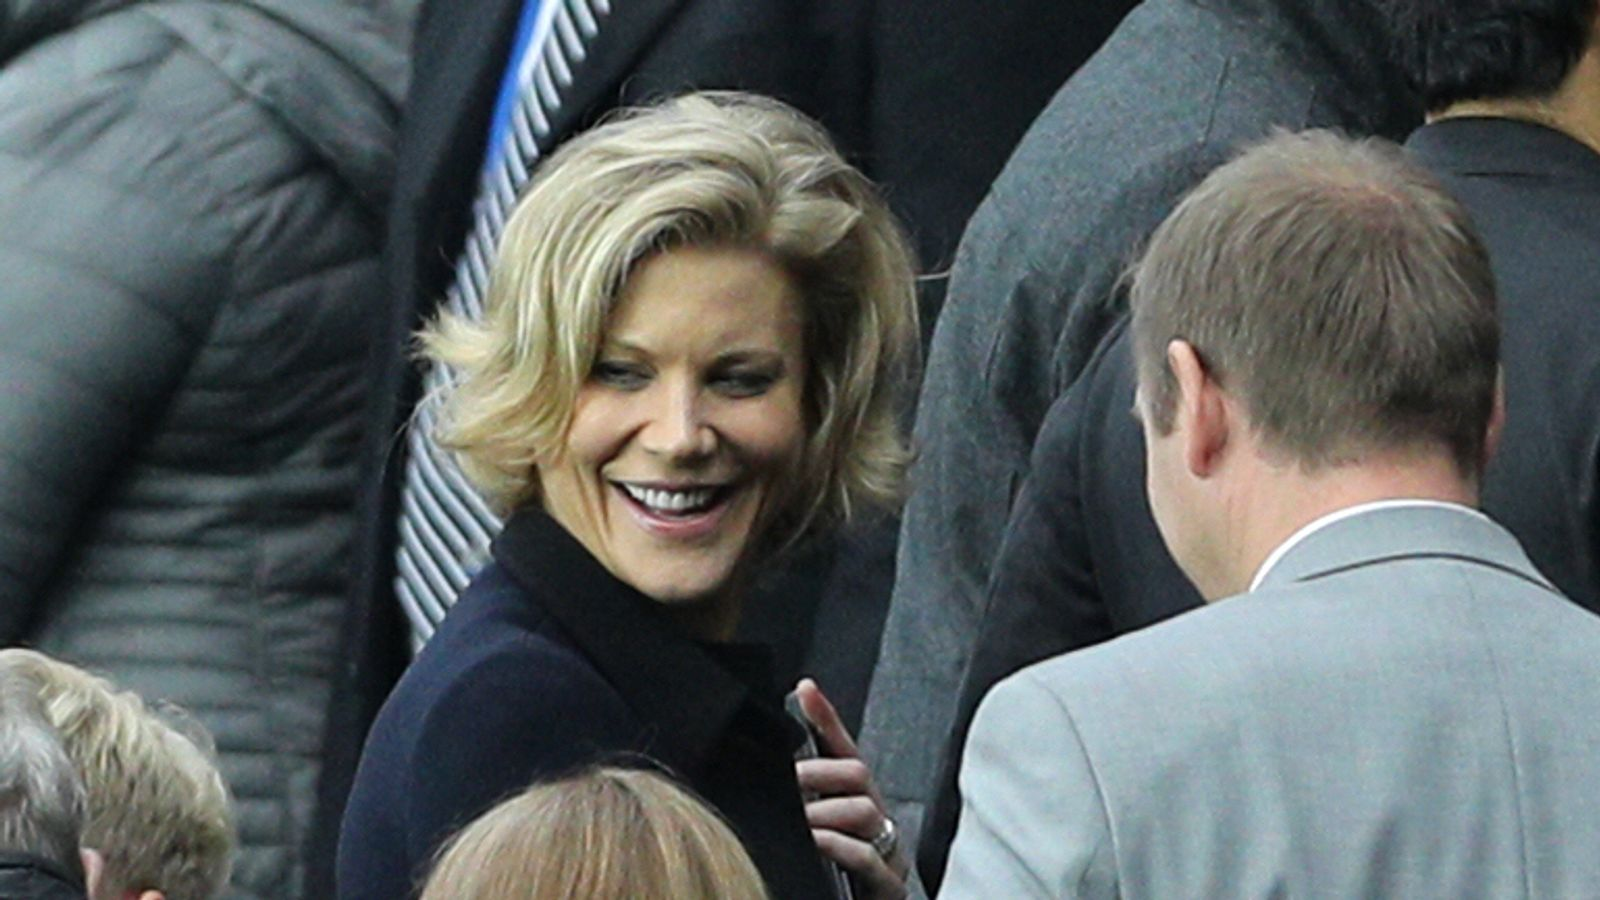 Newcastle takeover: Amanda Staveley wants UK Government and Premier League to make arbitration transparent